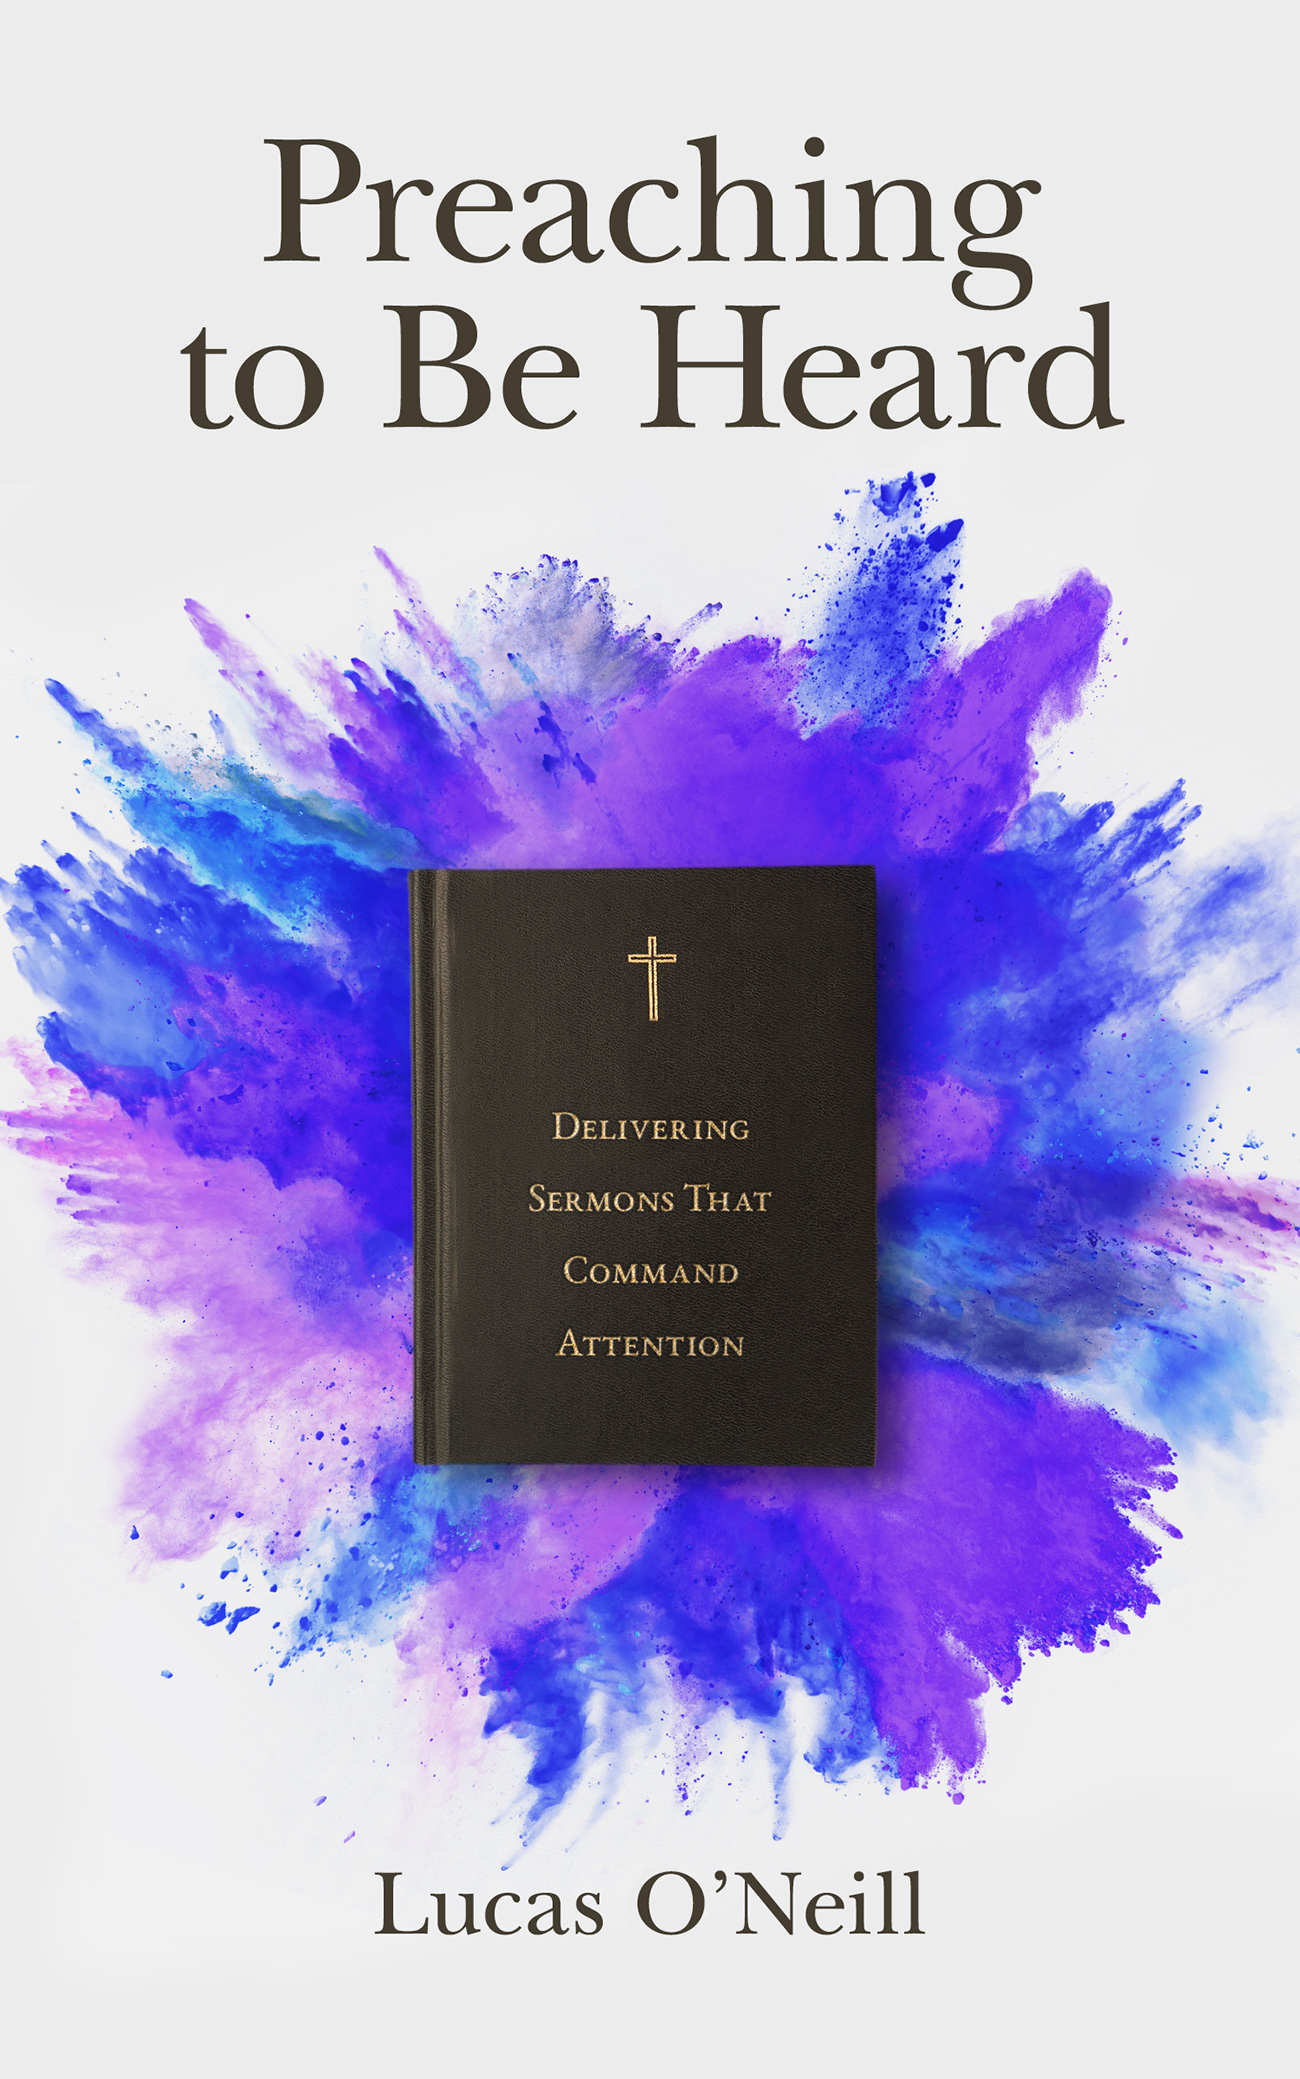 Preaching to Be Heard: Delivering Sermons That Command Attention